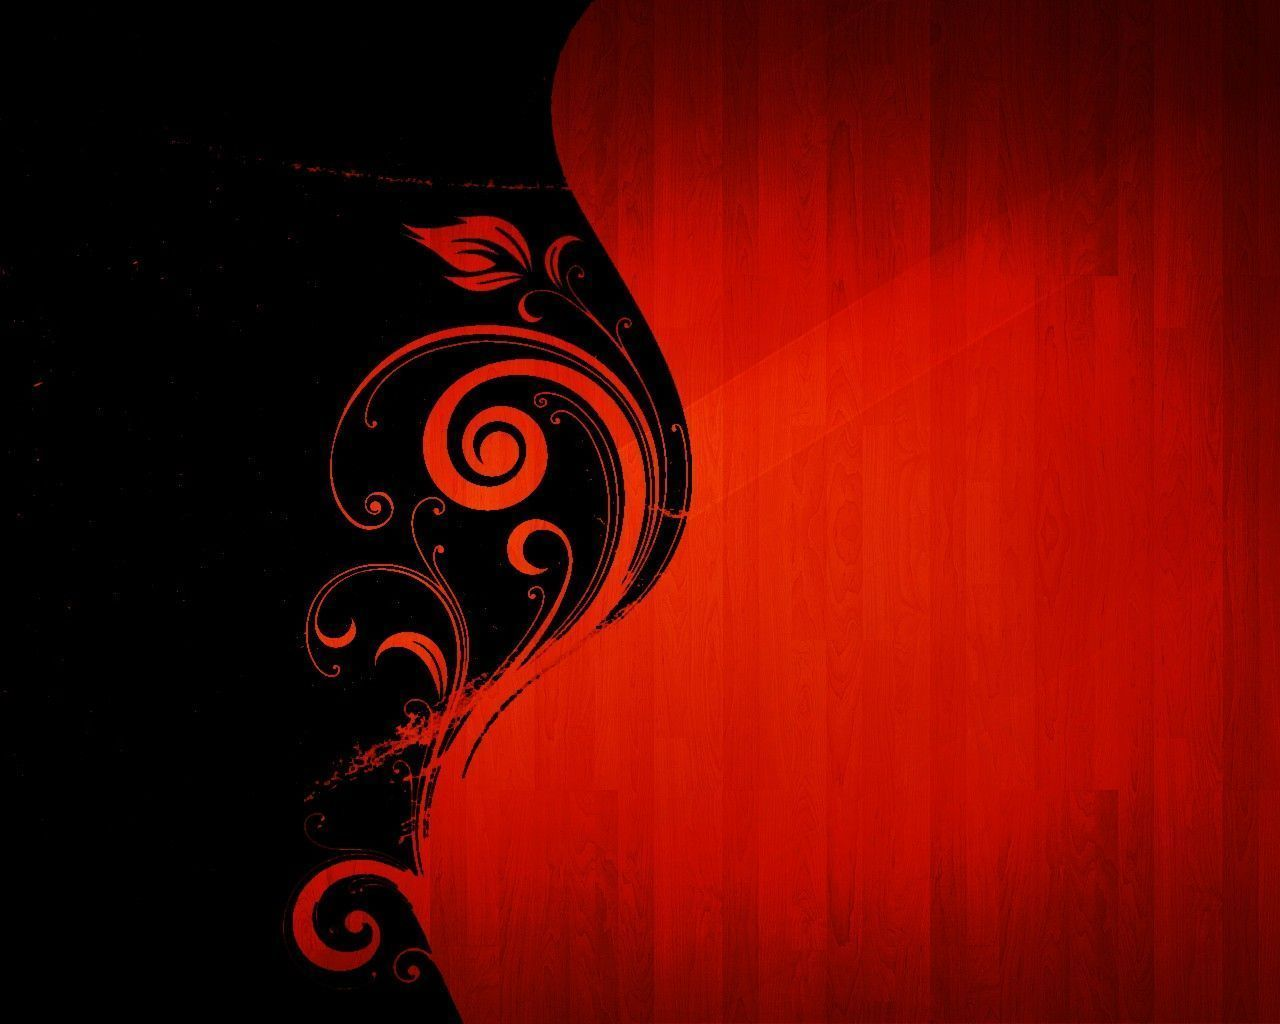 Black And Red Abstract Free Download Hd Wallpaper 467 Amazing Iphone Wallpaper Black Phone Wallpaper Abstract Wallpaper